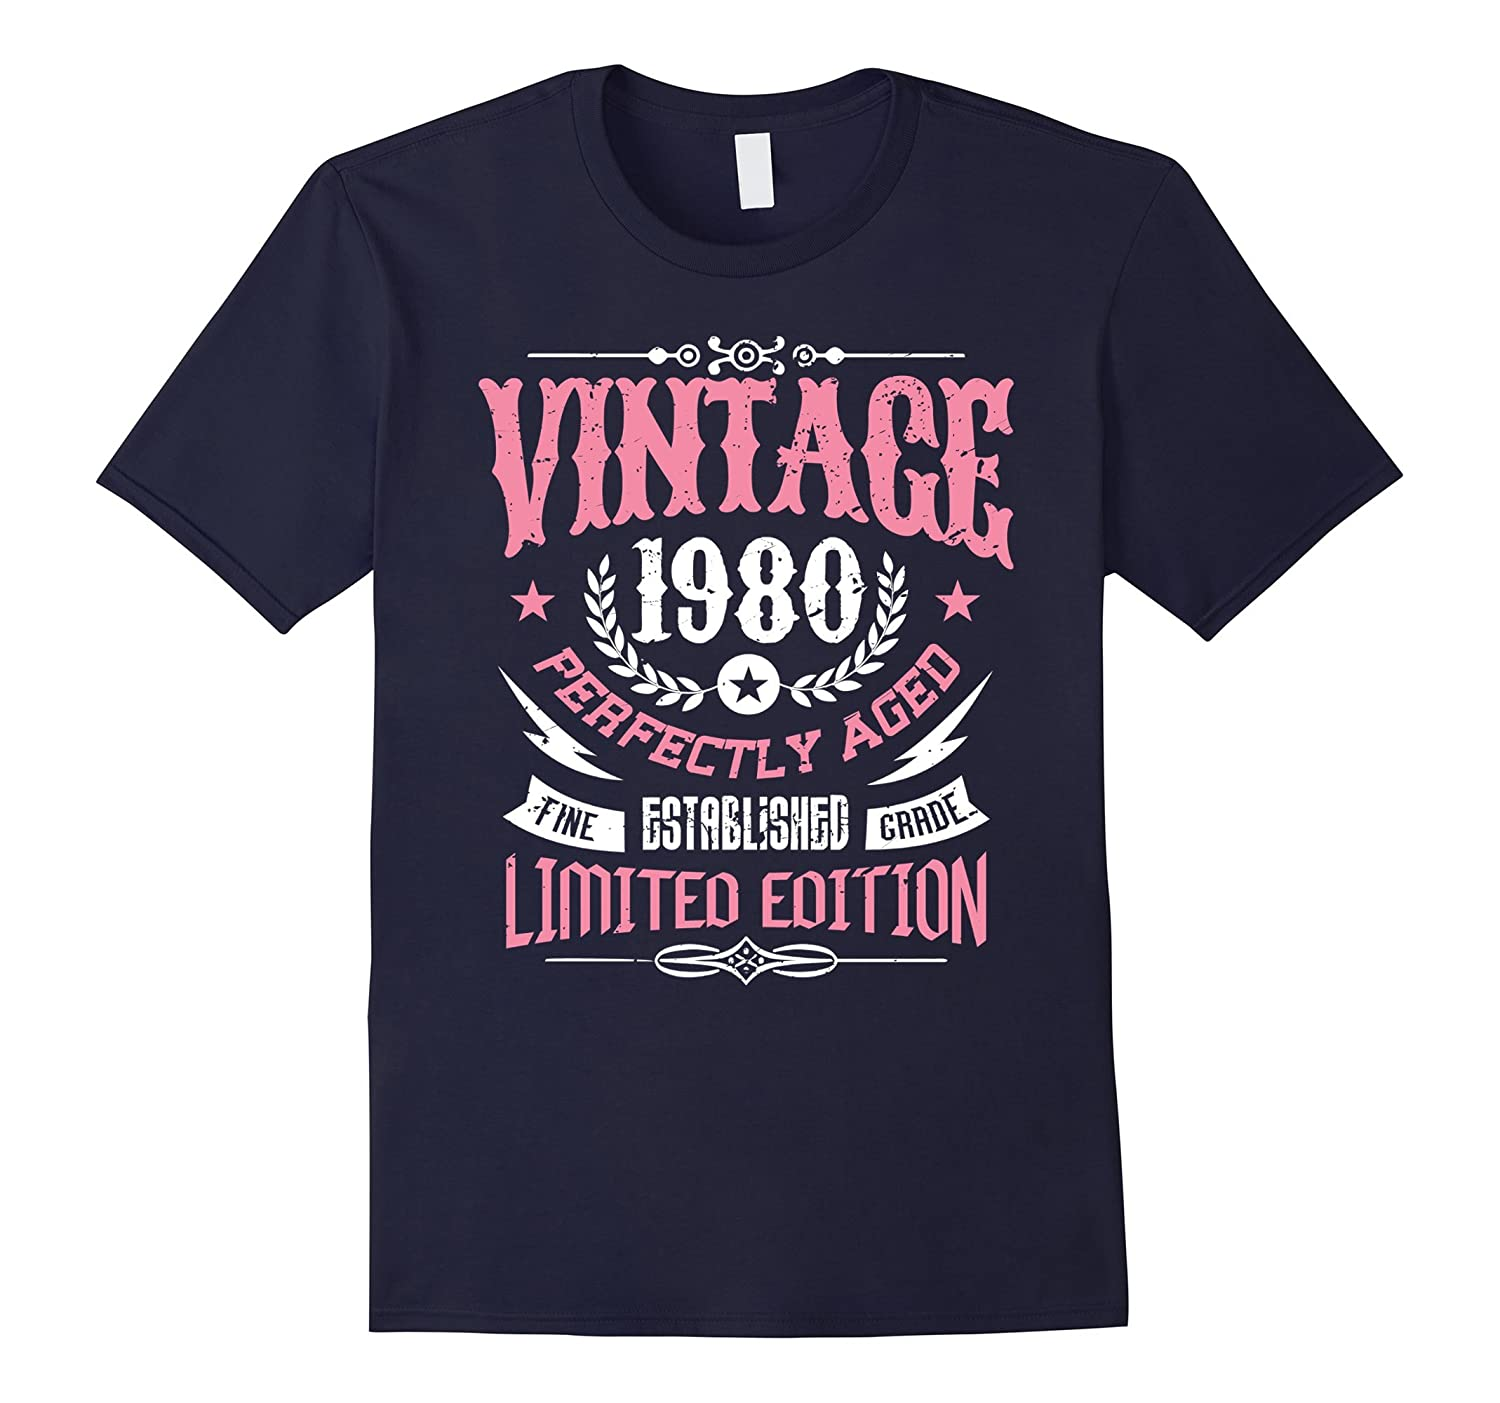 37th Birthday Gift T-Shirt Vintage 1980 - 37 Years Old Shirt-PL